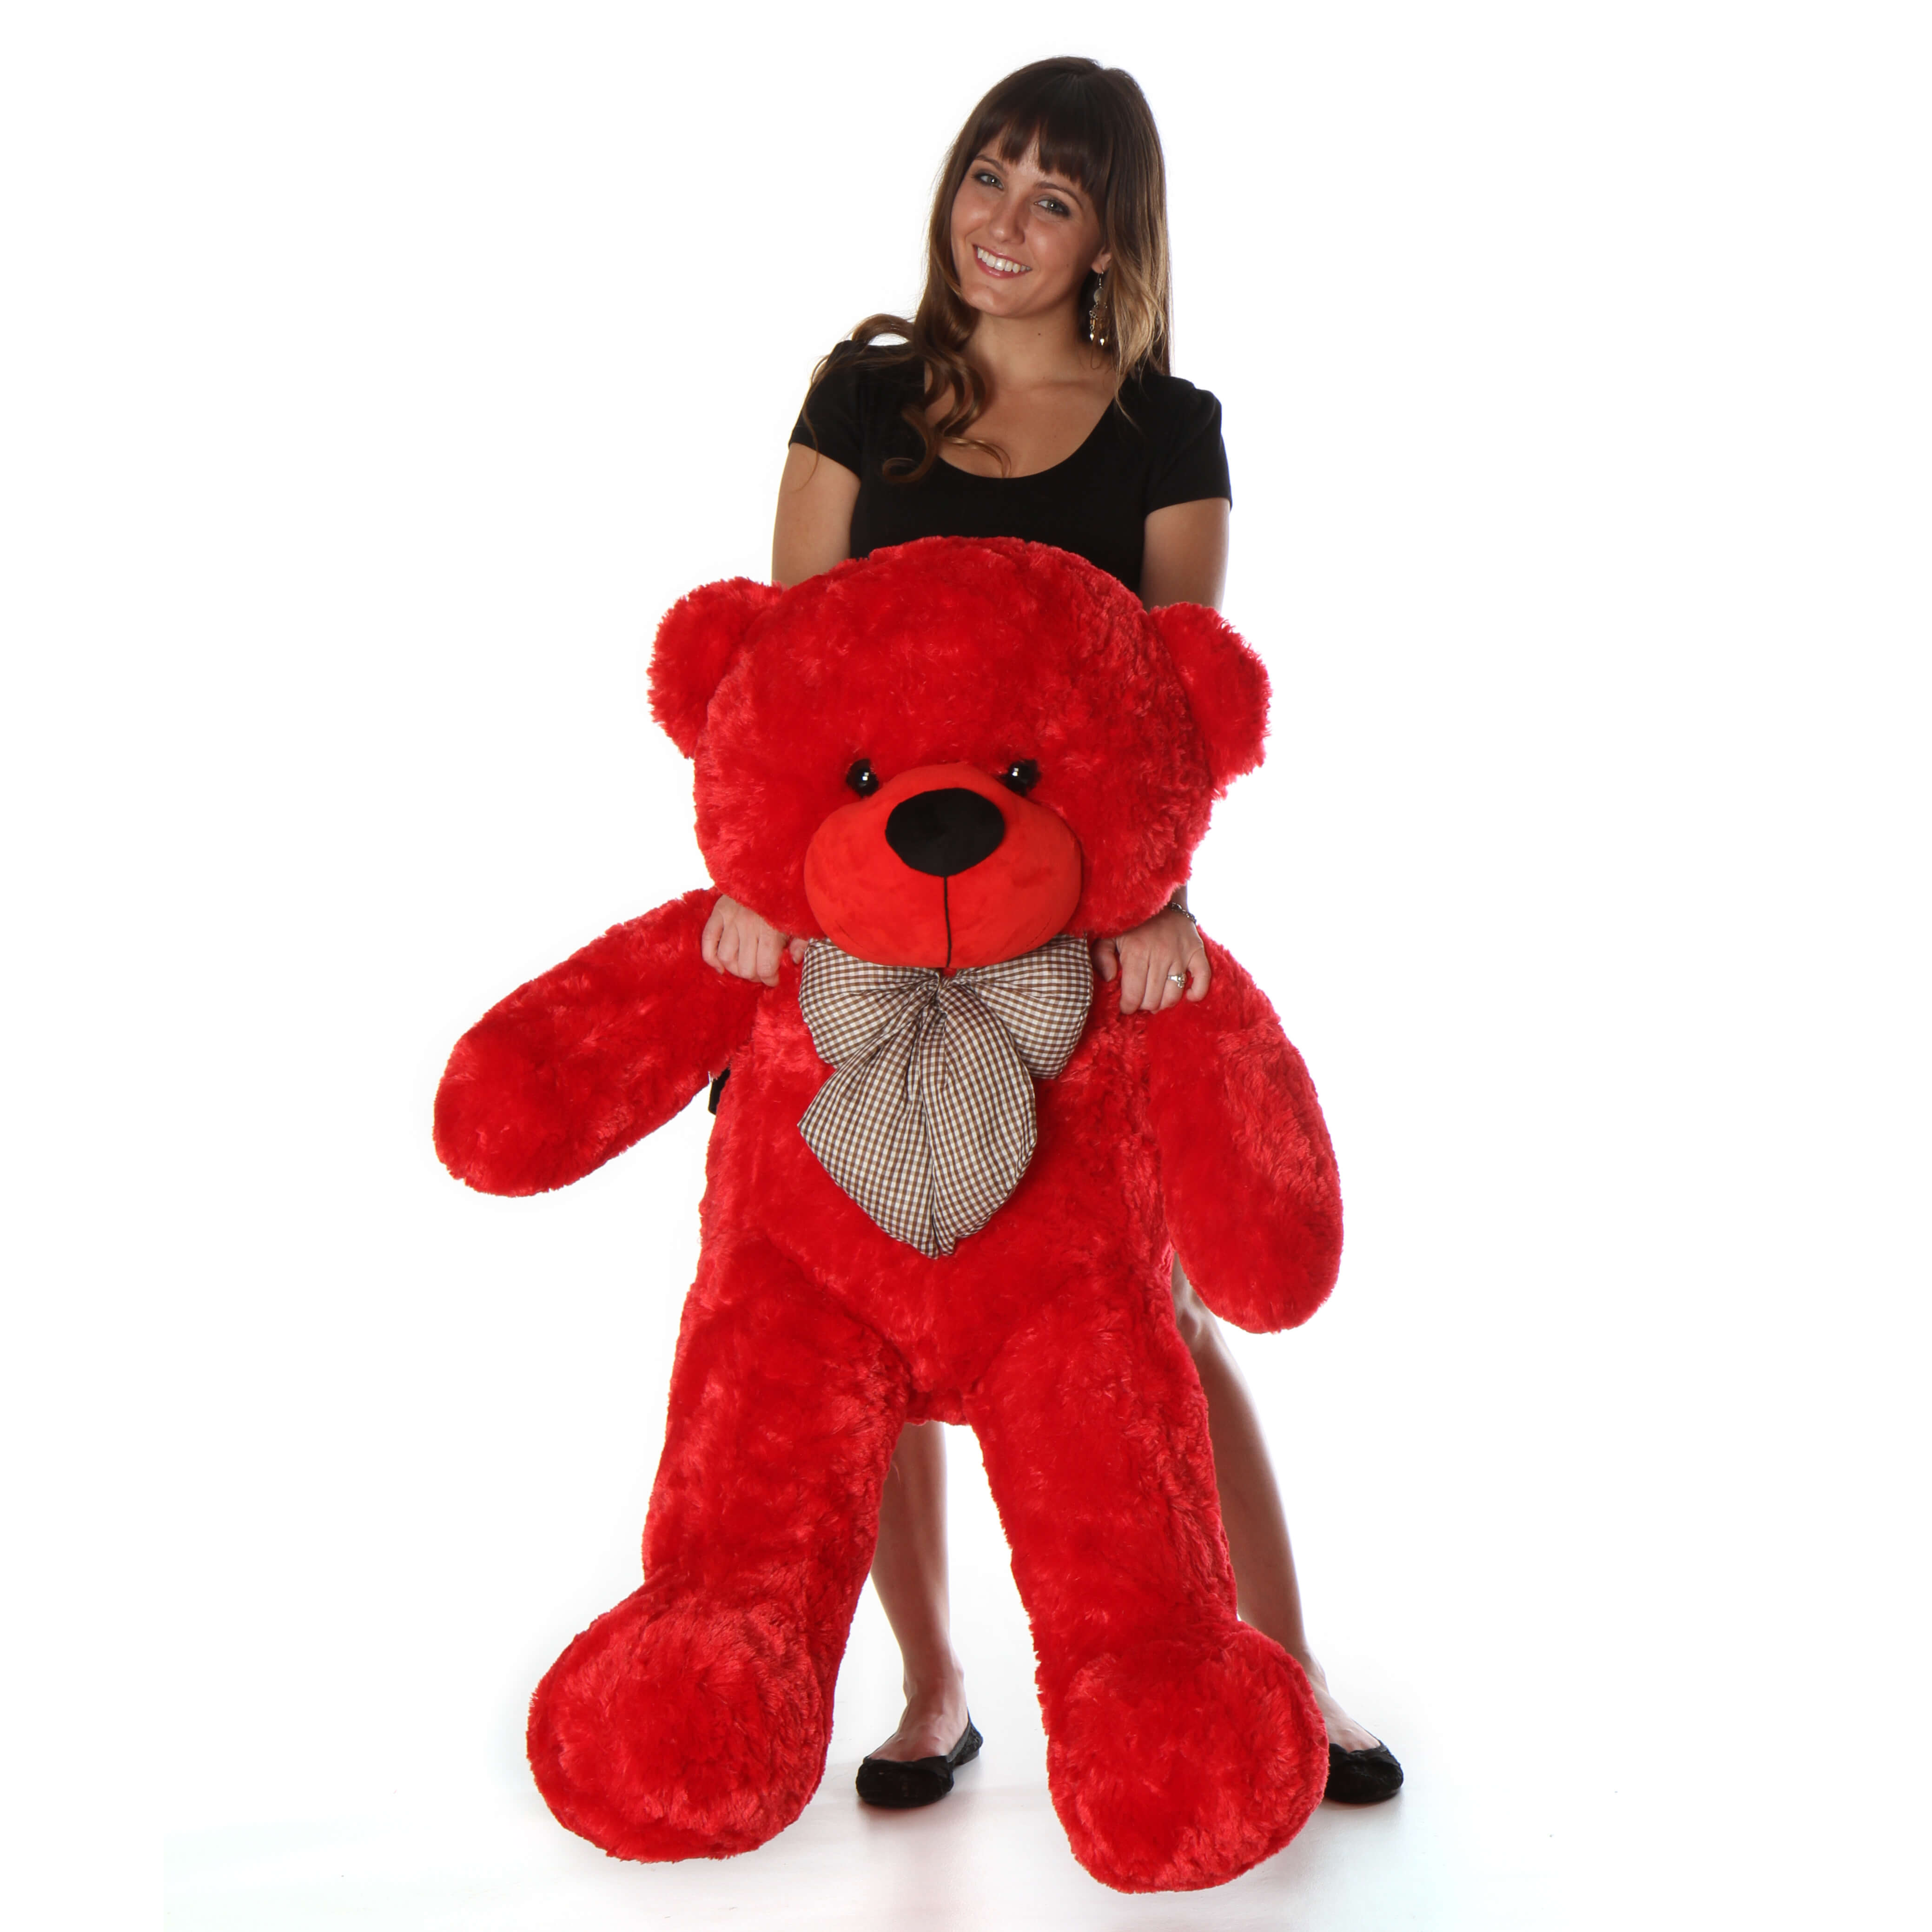 4ft-bitsy-cuddles-red-teddy-bear-perfect-gift-1.jpg